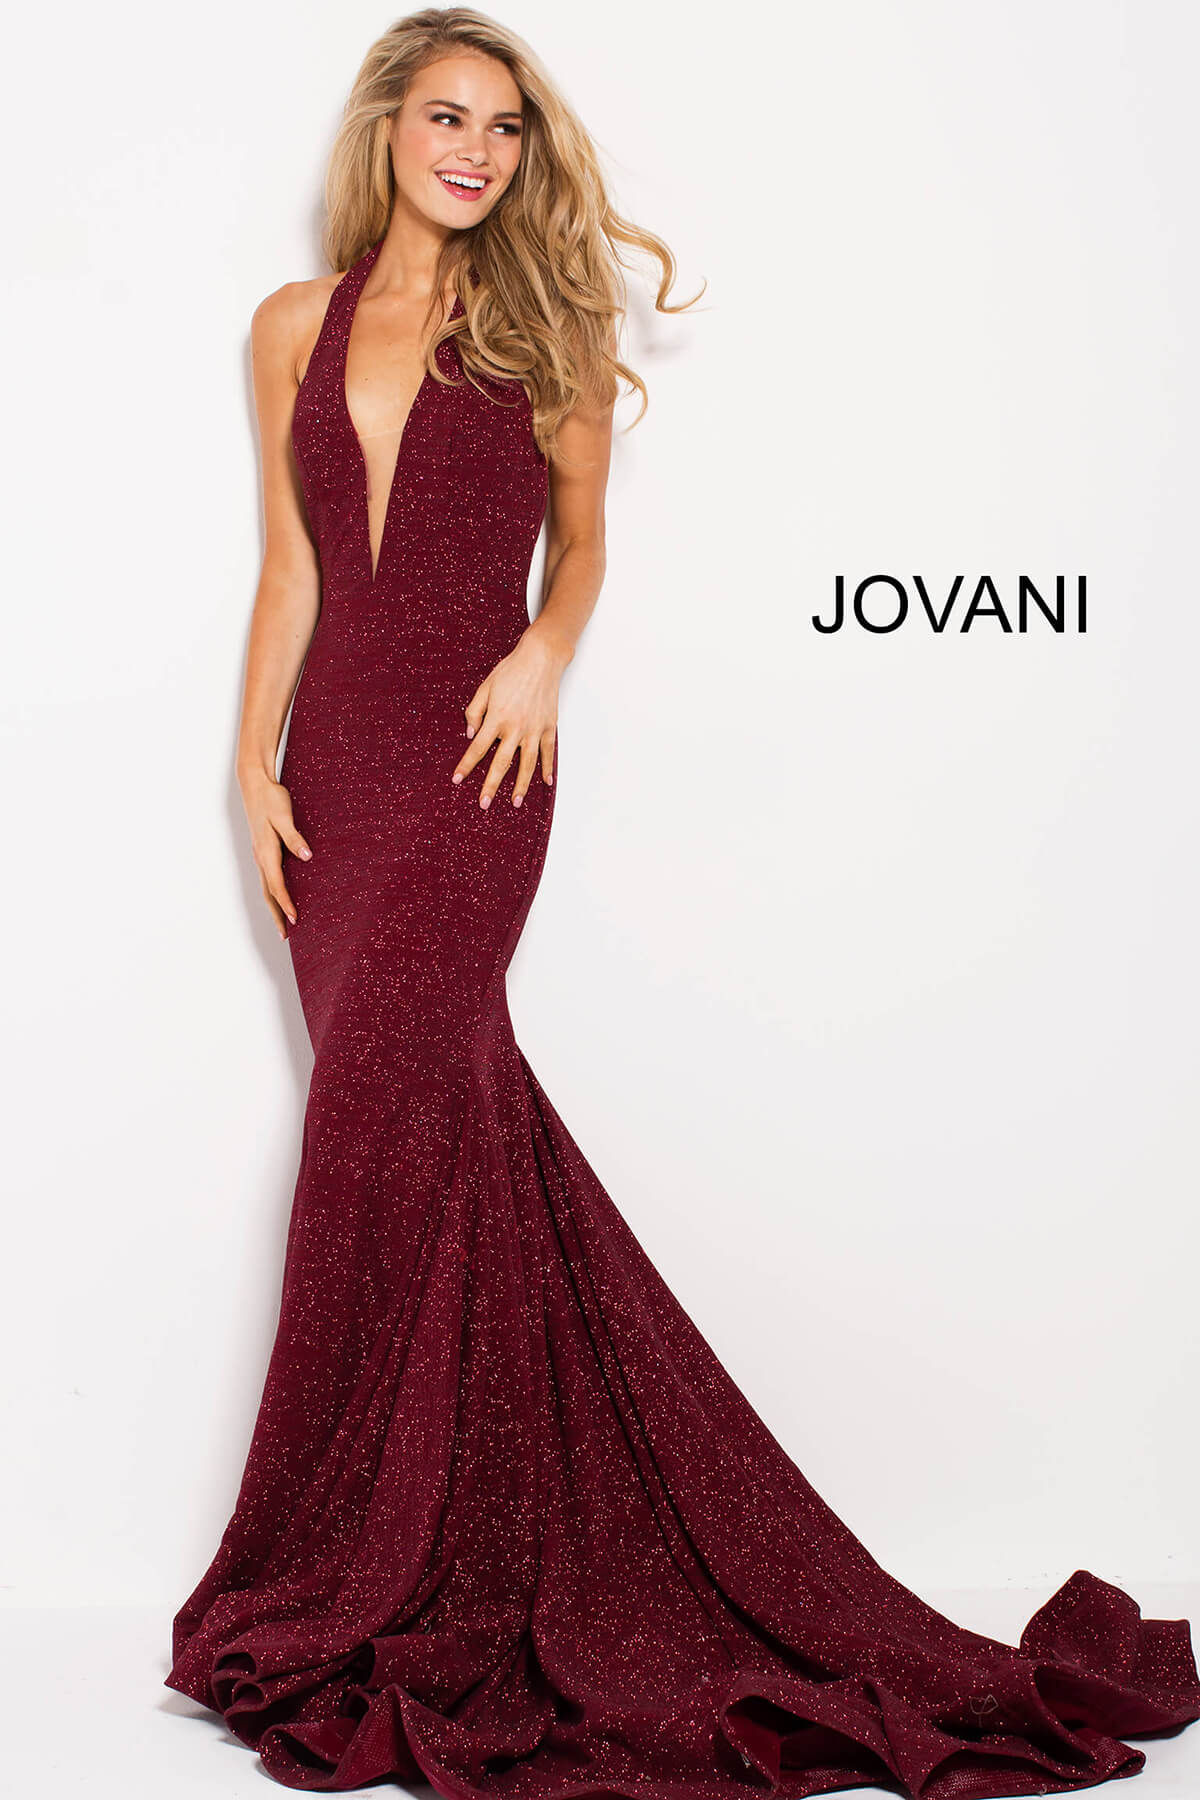 jovani Wine Glitter Halter Neck Jovani Dress 55414 on mobile 12